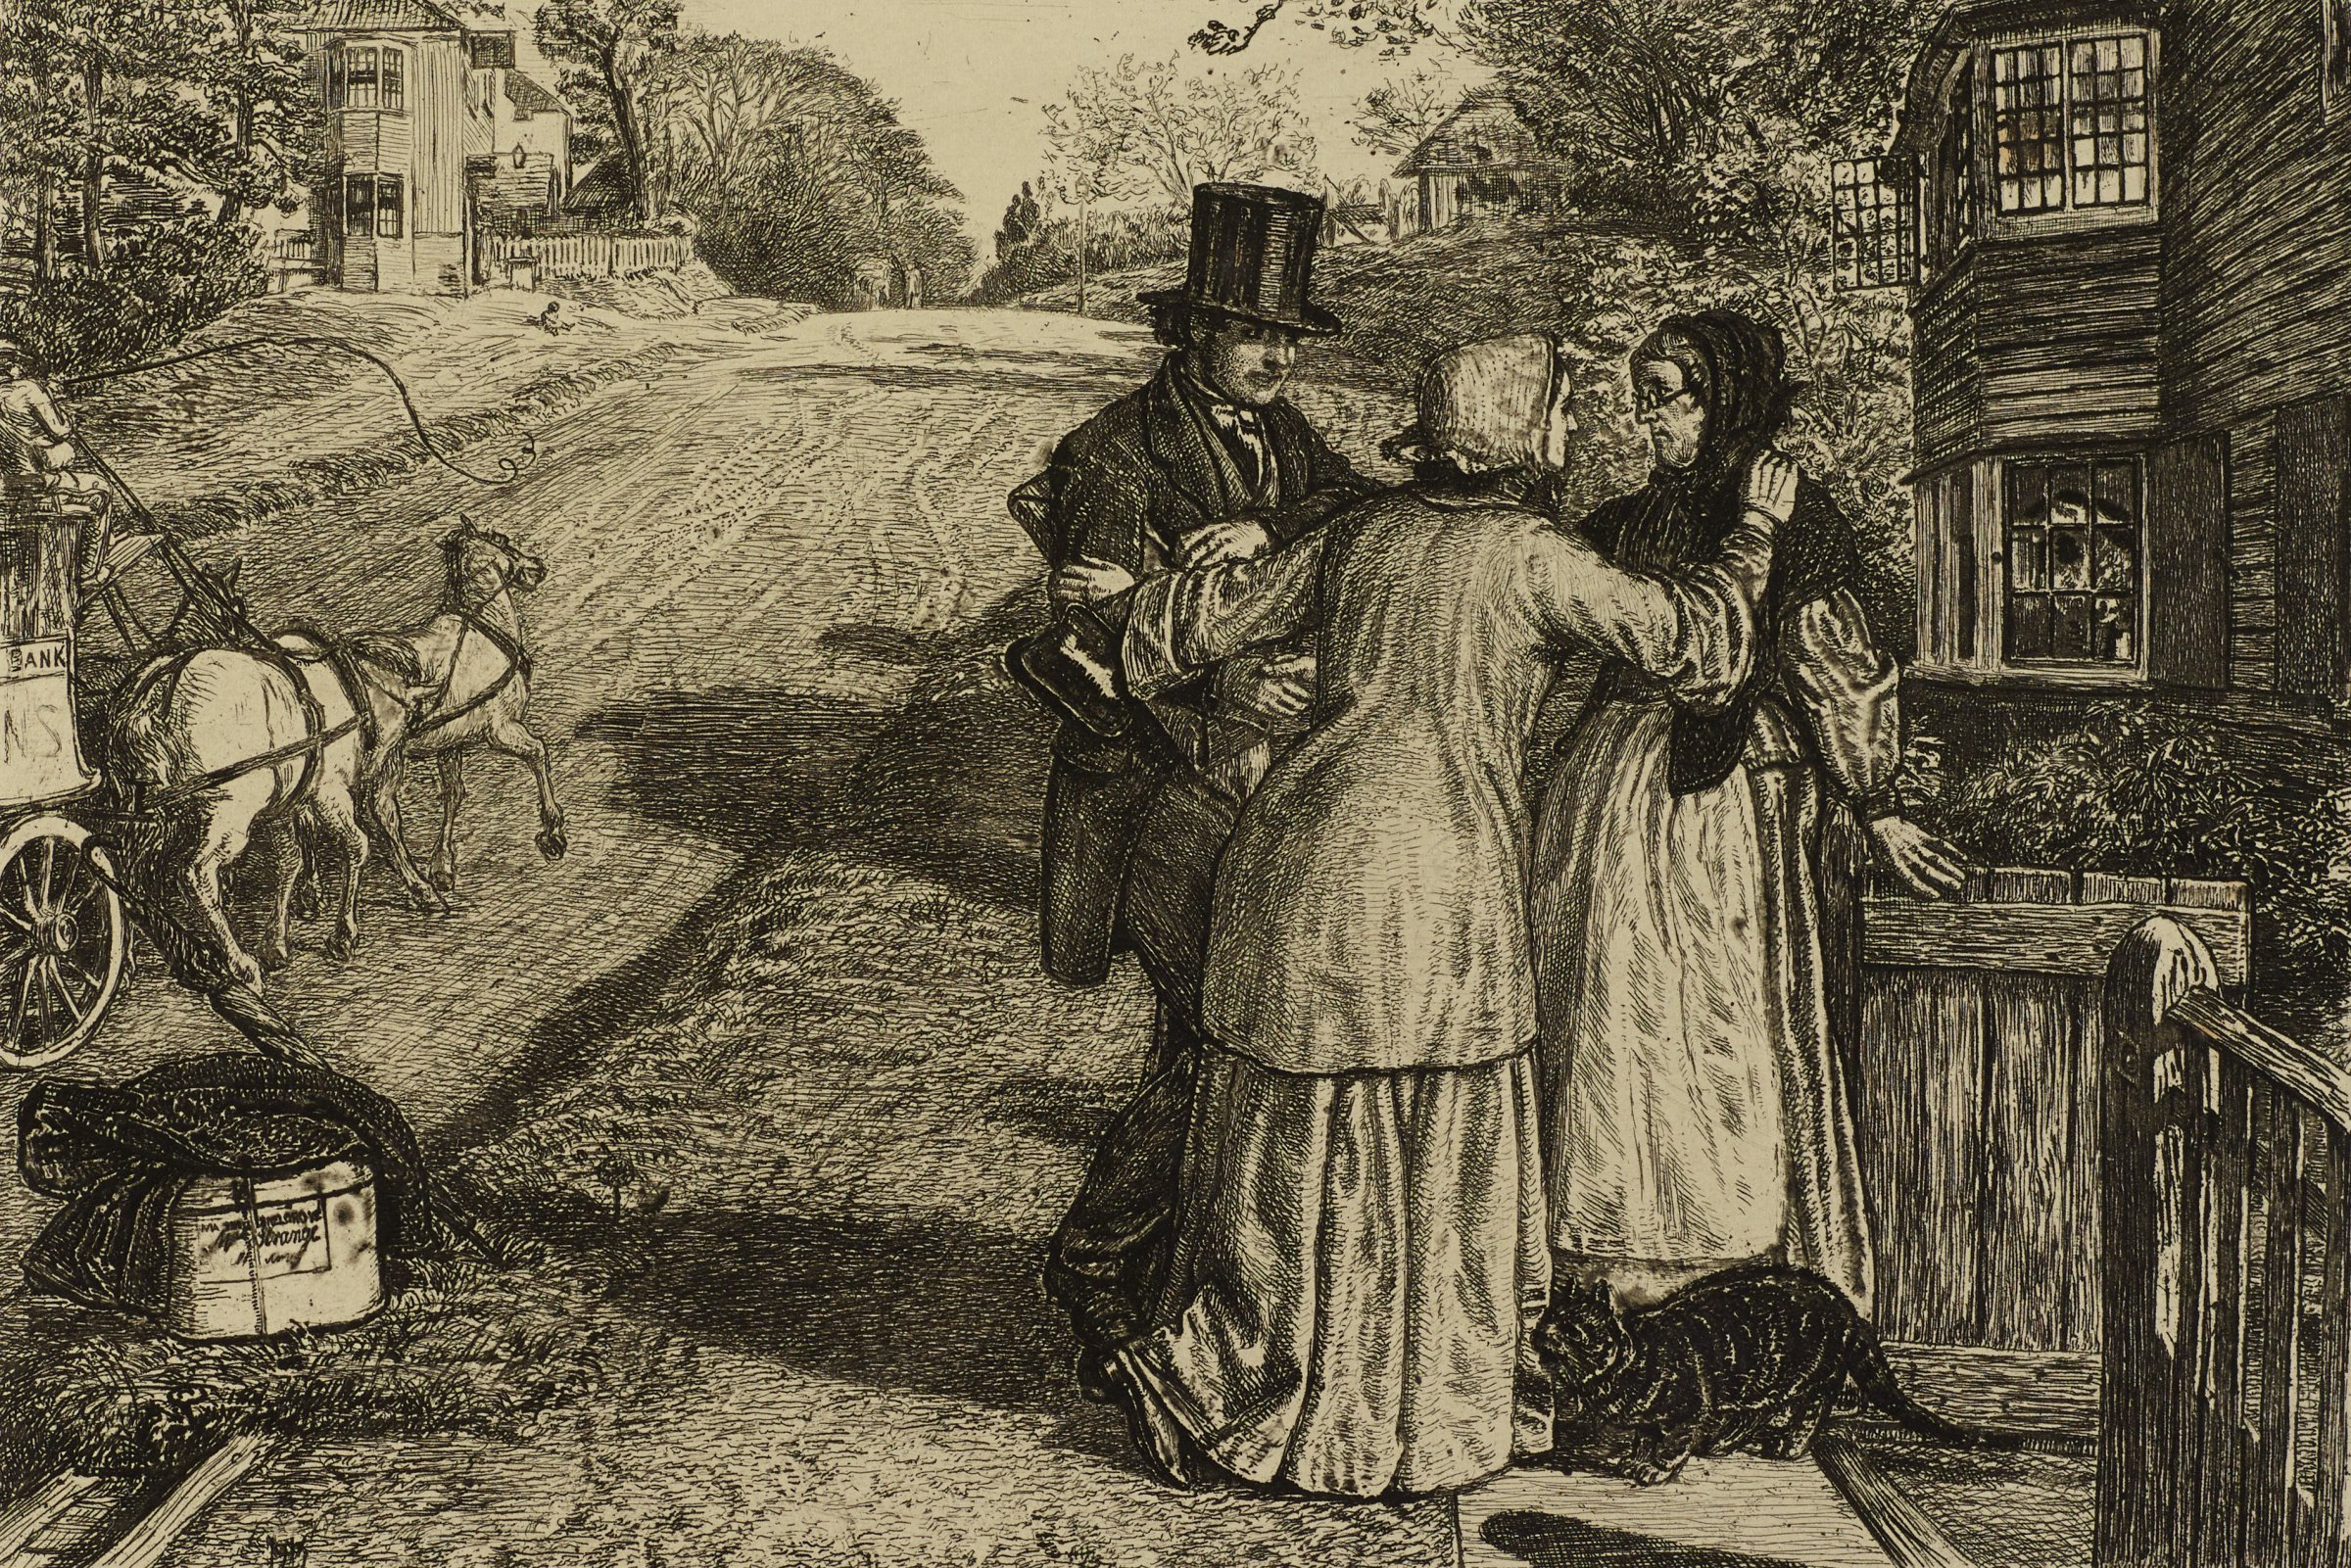 Two women and one man gather together in conversation. They stand on a sidewalk outside the gate of a house. A cat walks beside them. On the street, a horse and carriage pass by.